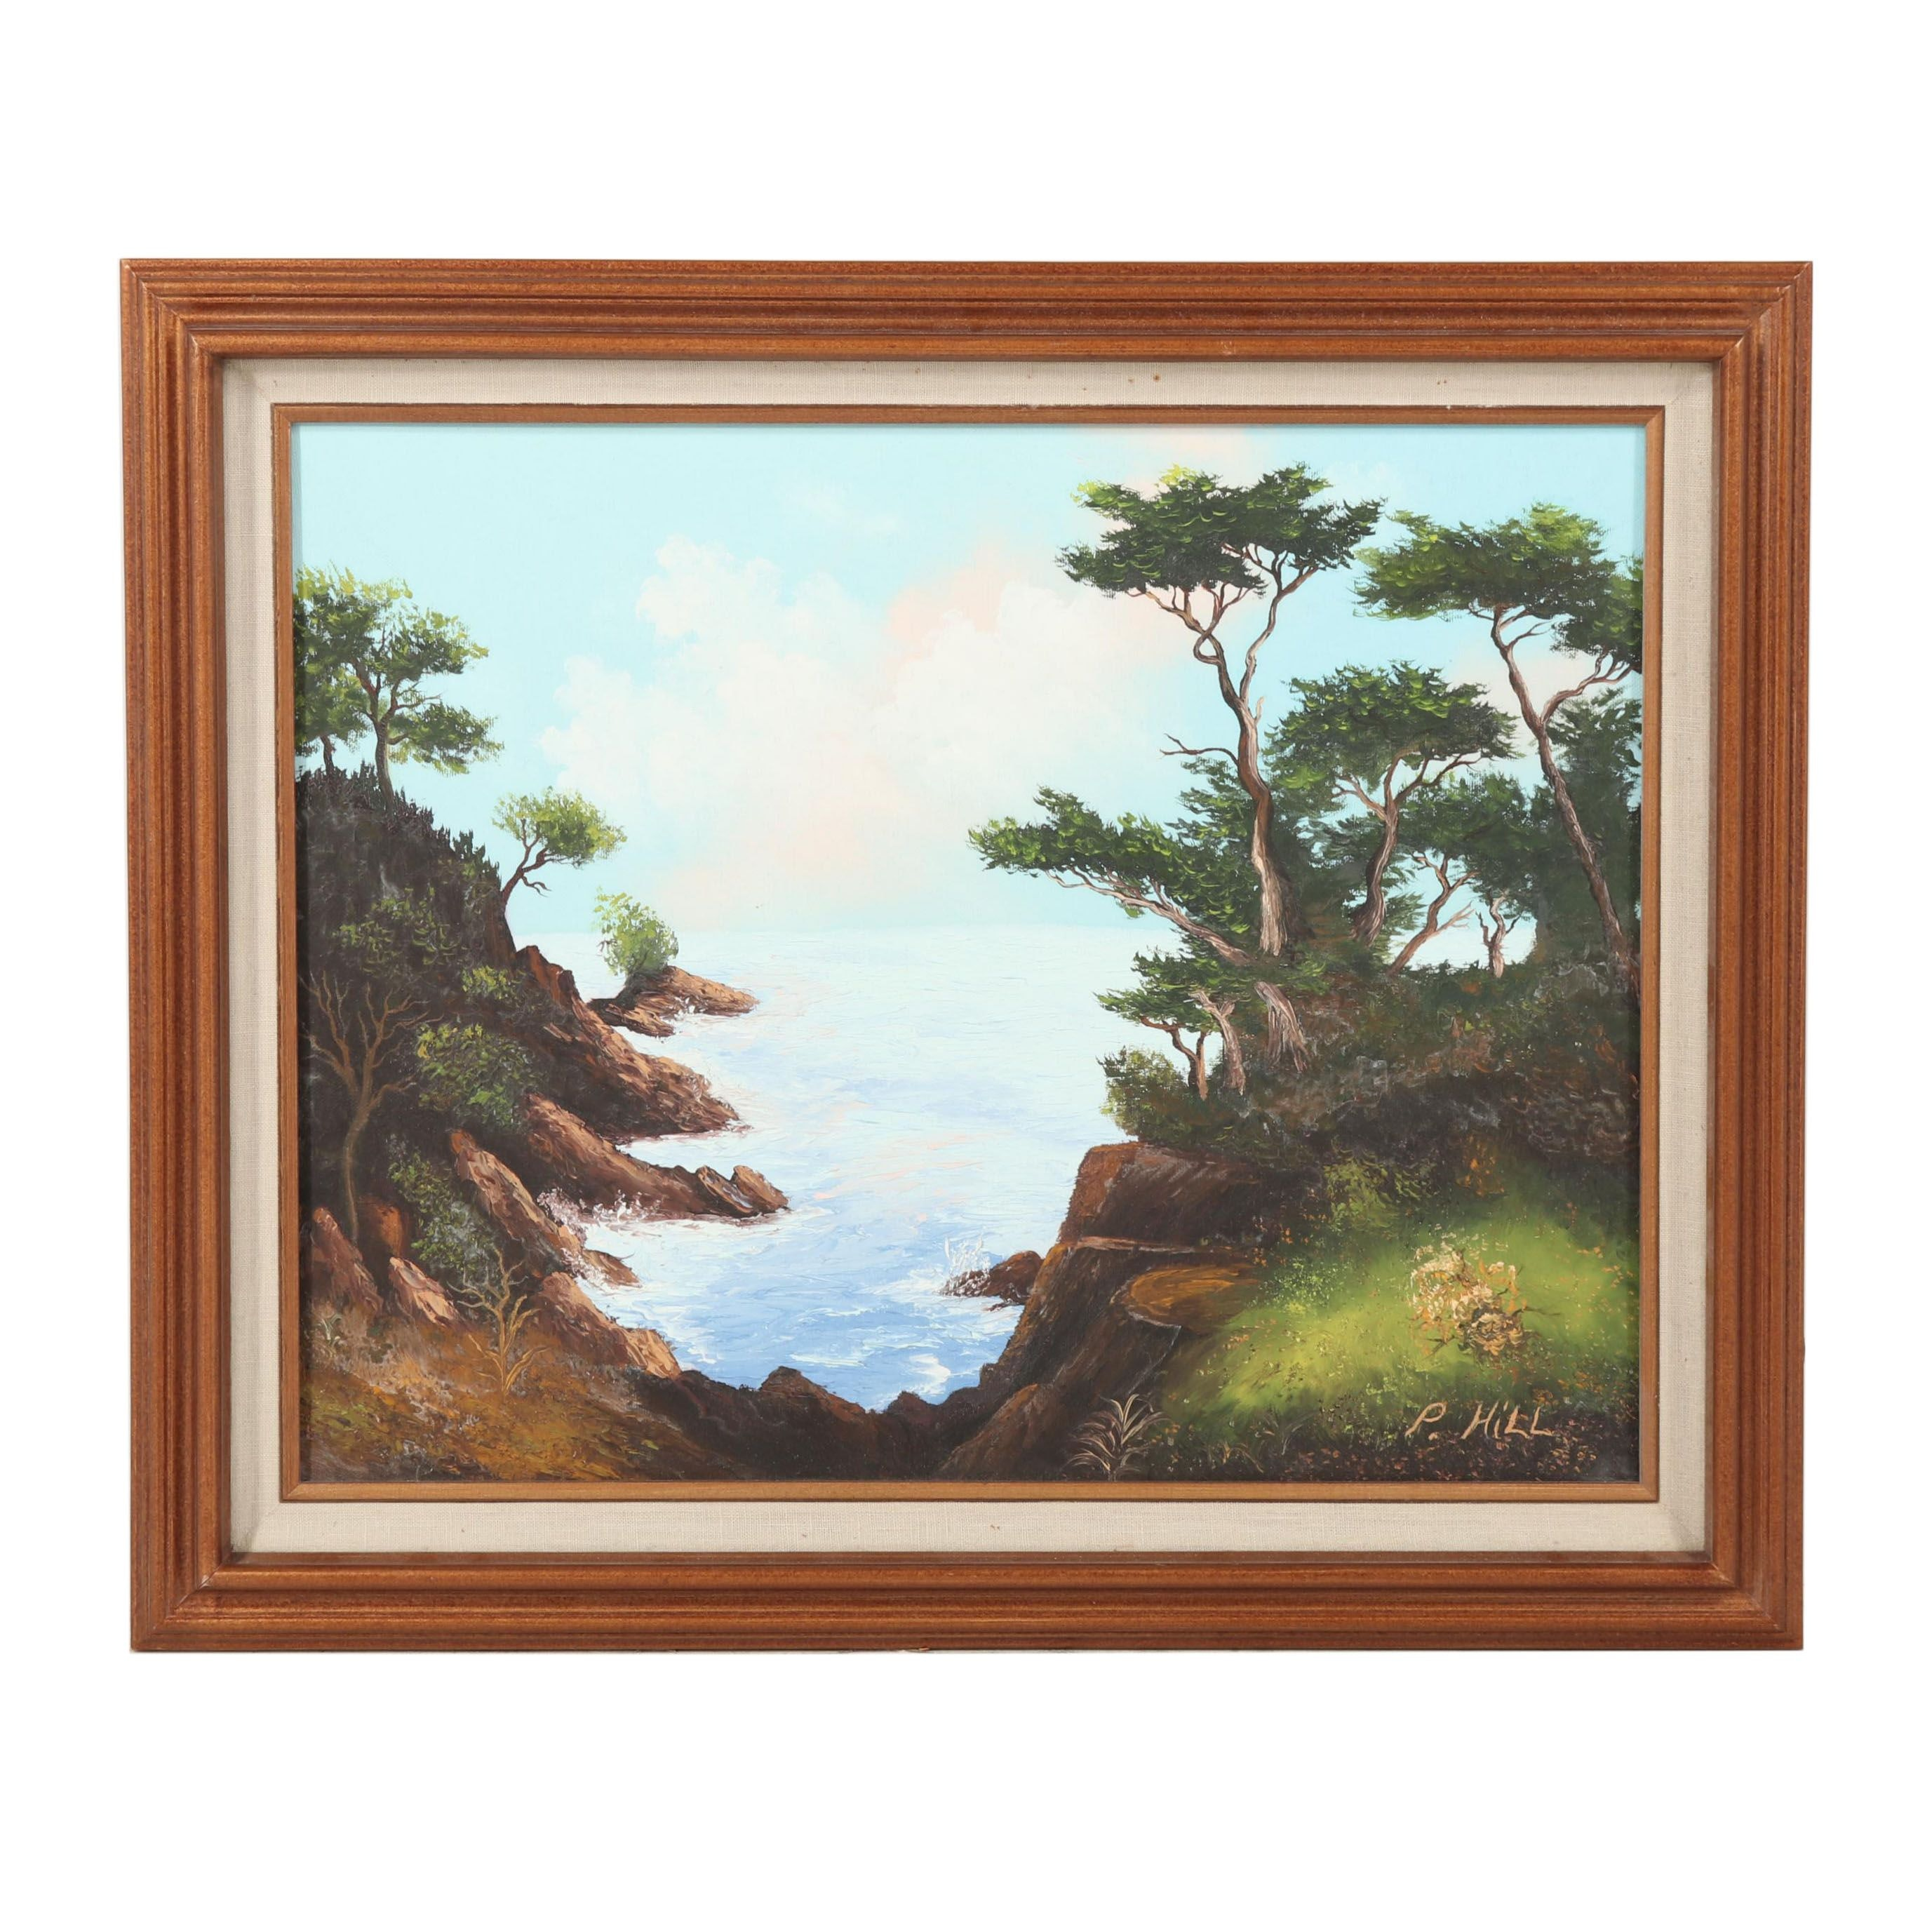 P. Hill Oil Painting of a Coastal Landscape